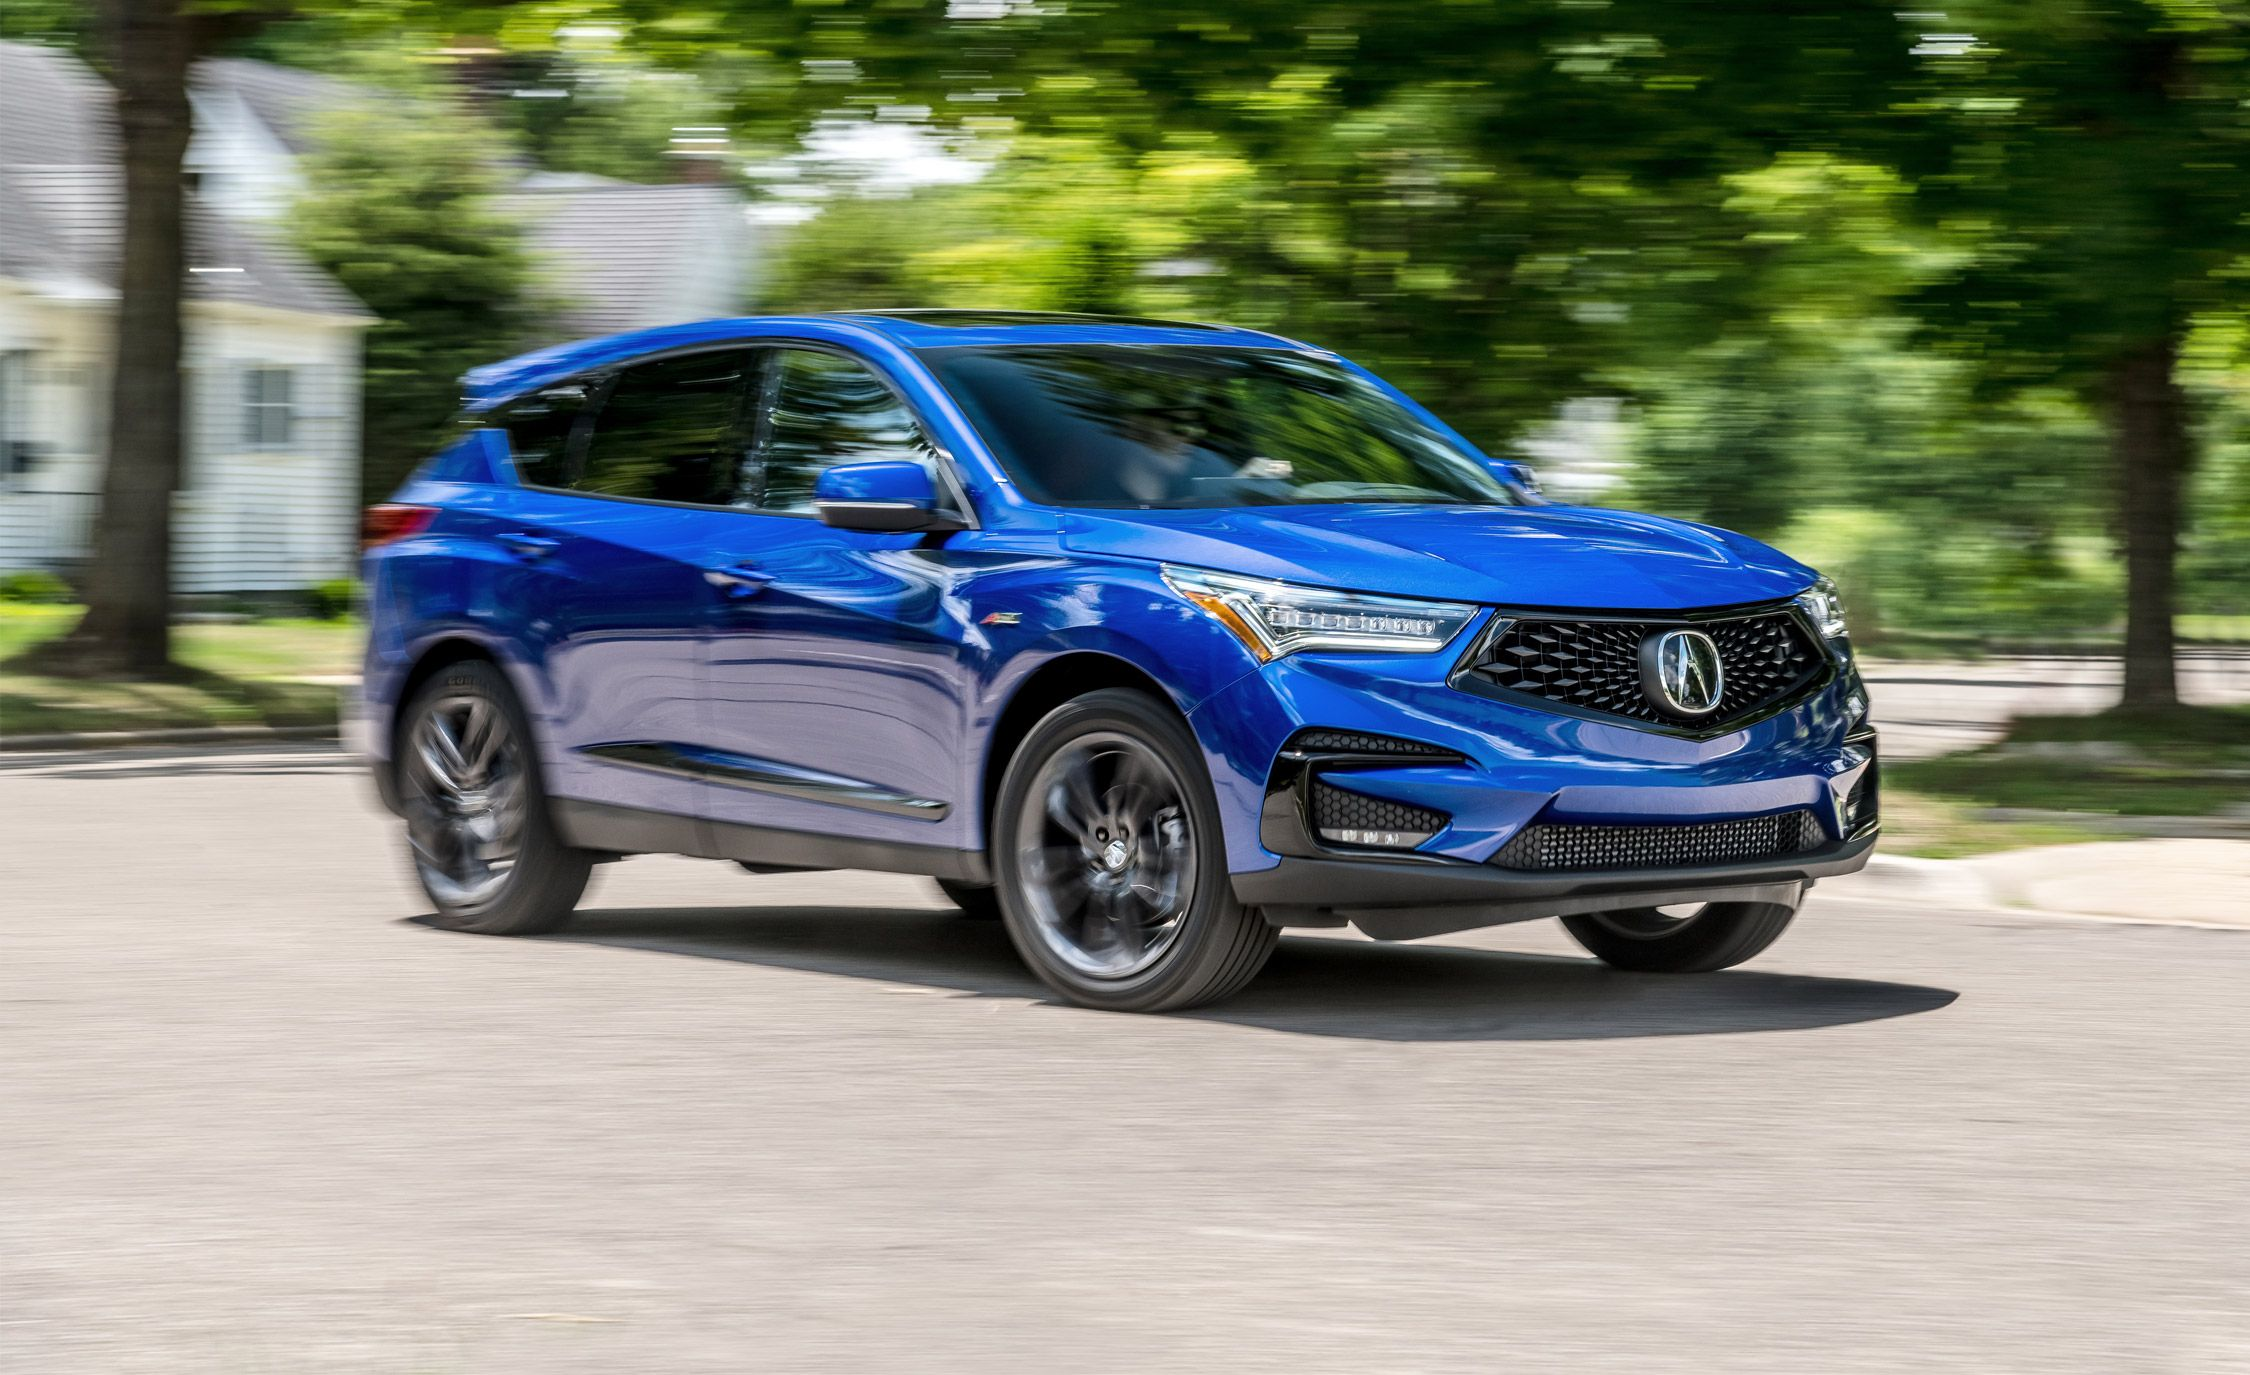 Ilx Acura Reviews >> The 2019 Acura RDX A-Spec Looks Good but Trails the Competition